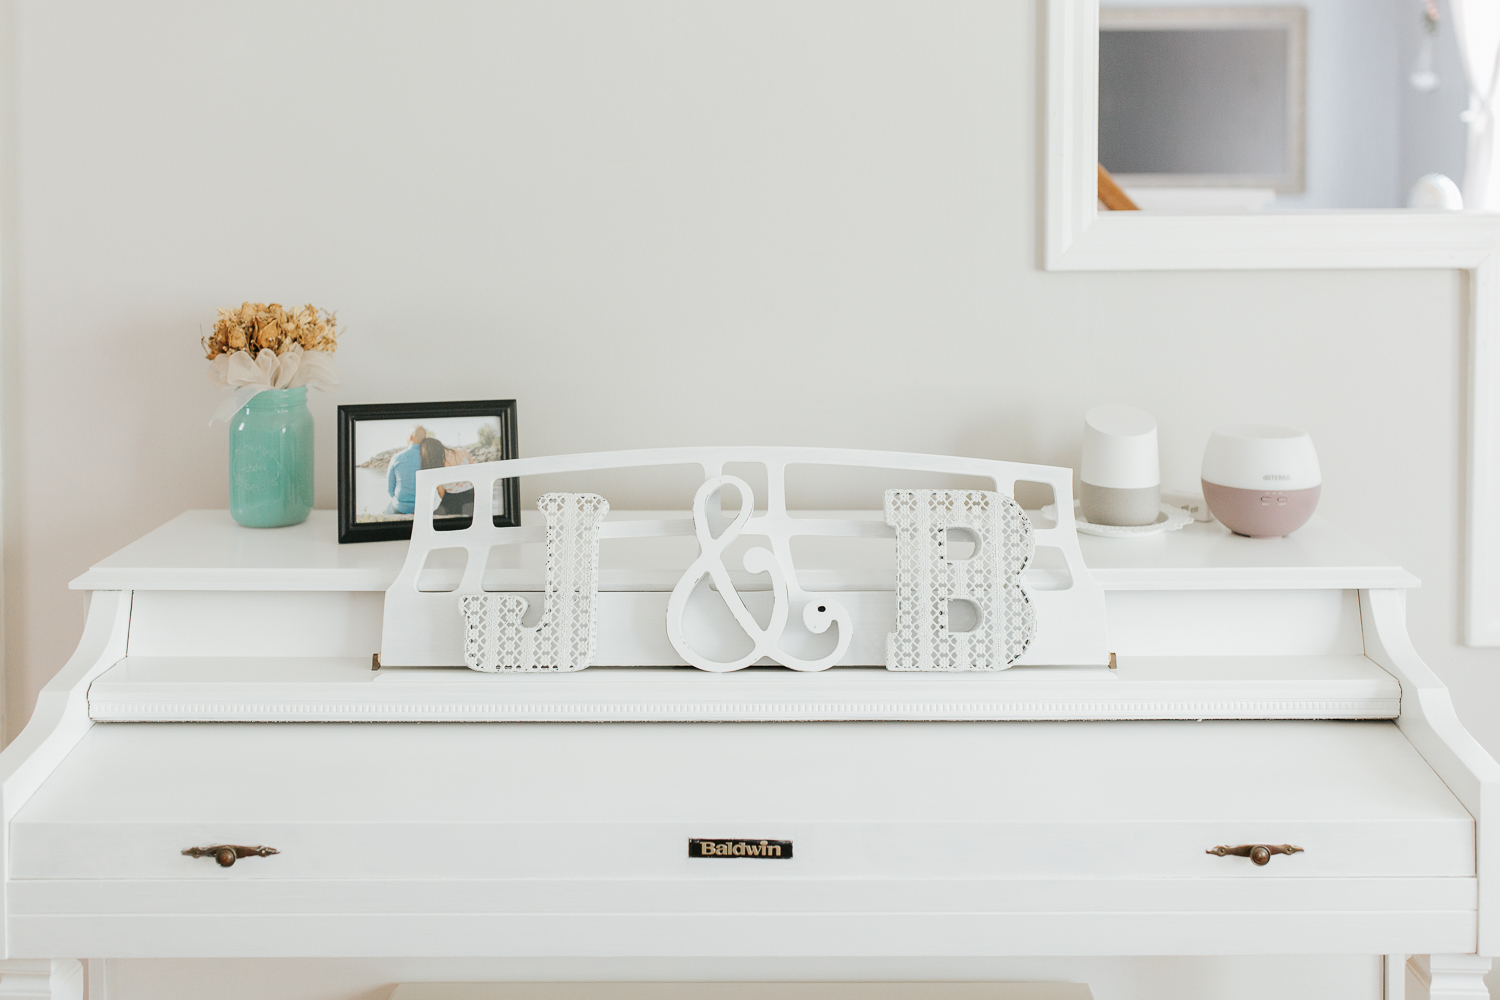 home decor on white piano - Barrie LifestylePhotos